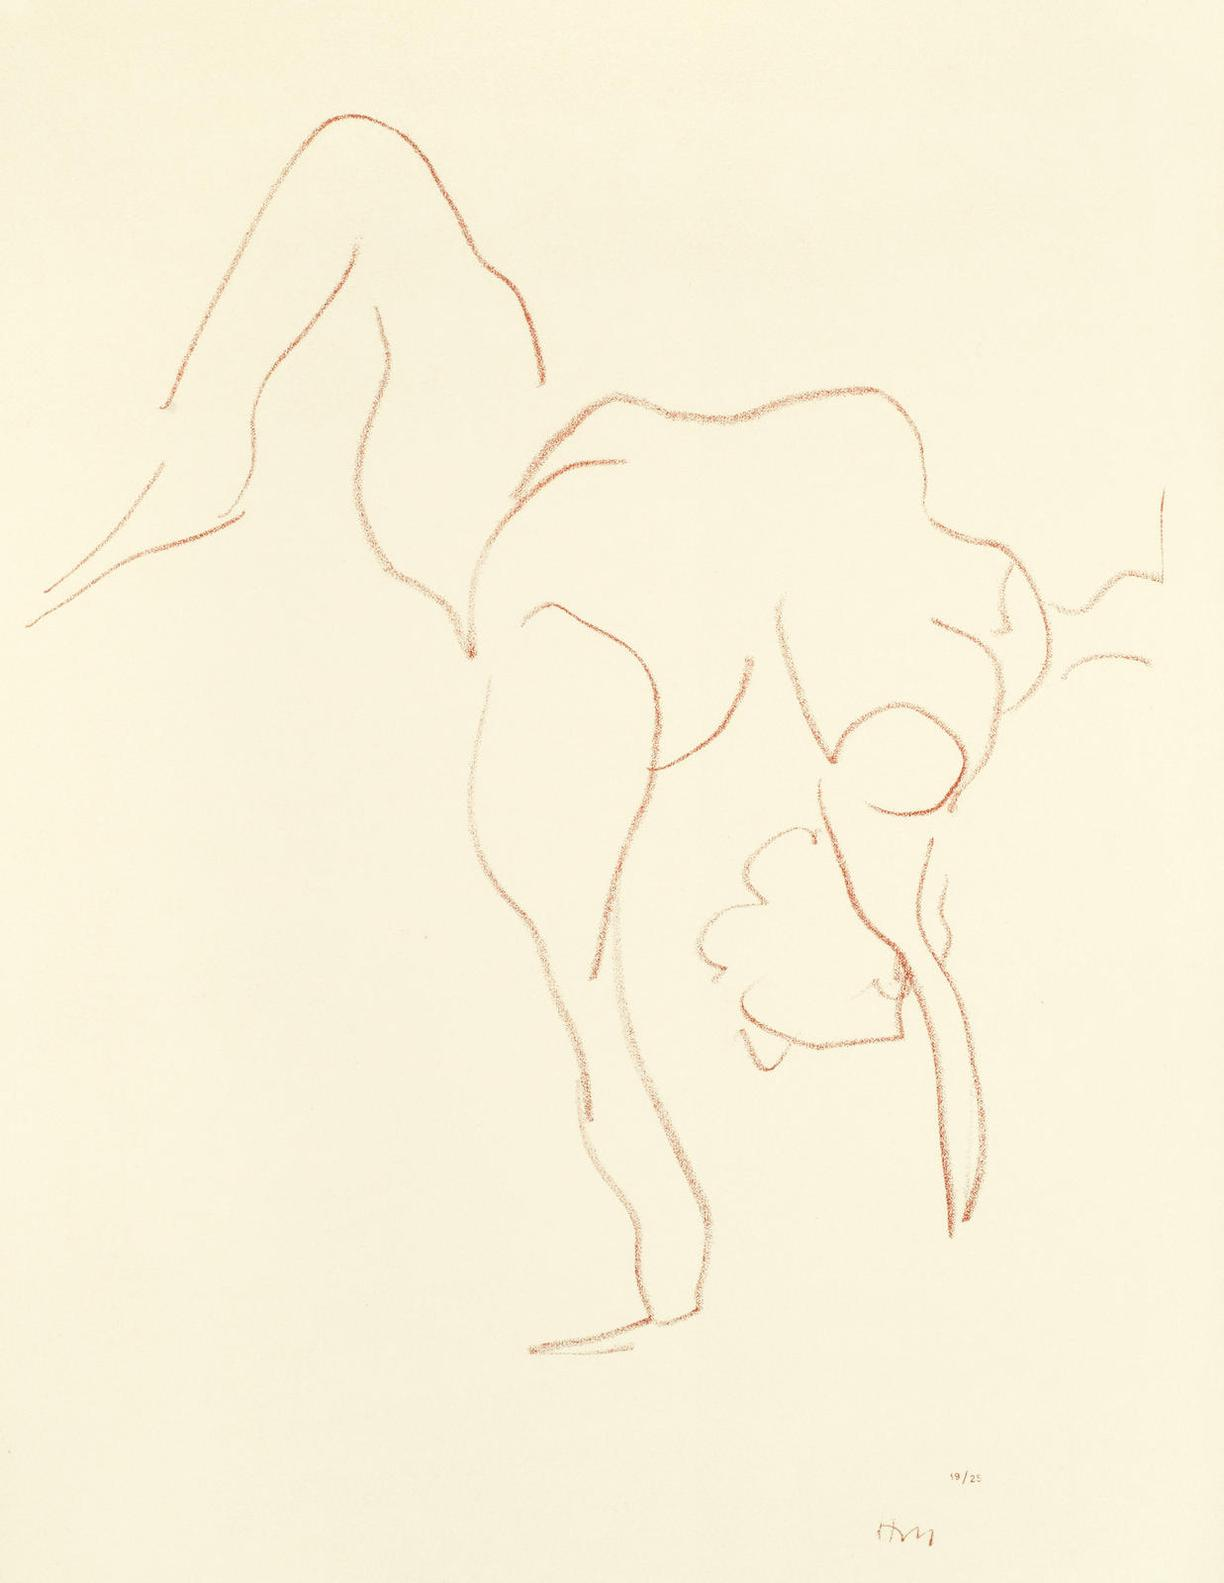 Henri Matisse-Plate 413 From Danseuses Acrobates (Duthuit 529)-1932